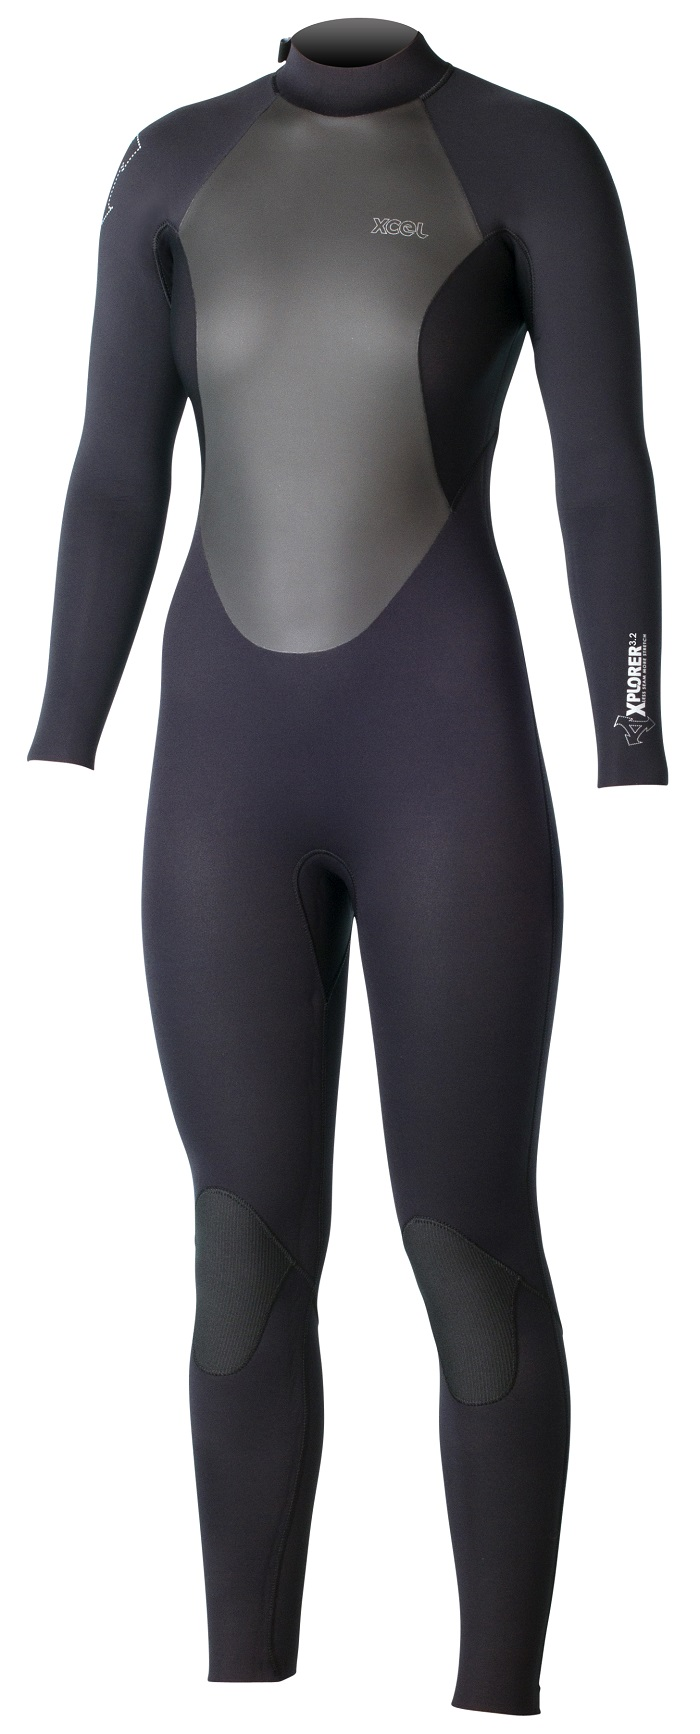 XCEL Xplorer Women's Wetsuit OS 3/2mm Back Zip Cold Water Wetsuit - Black